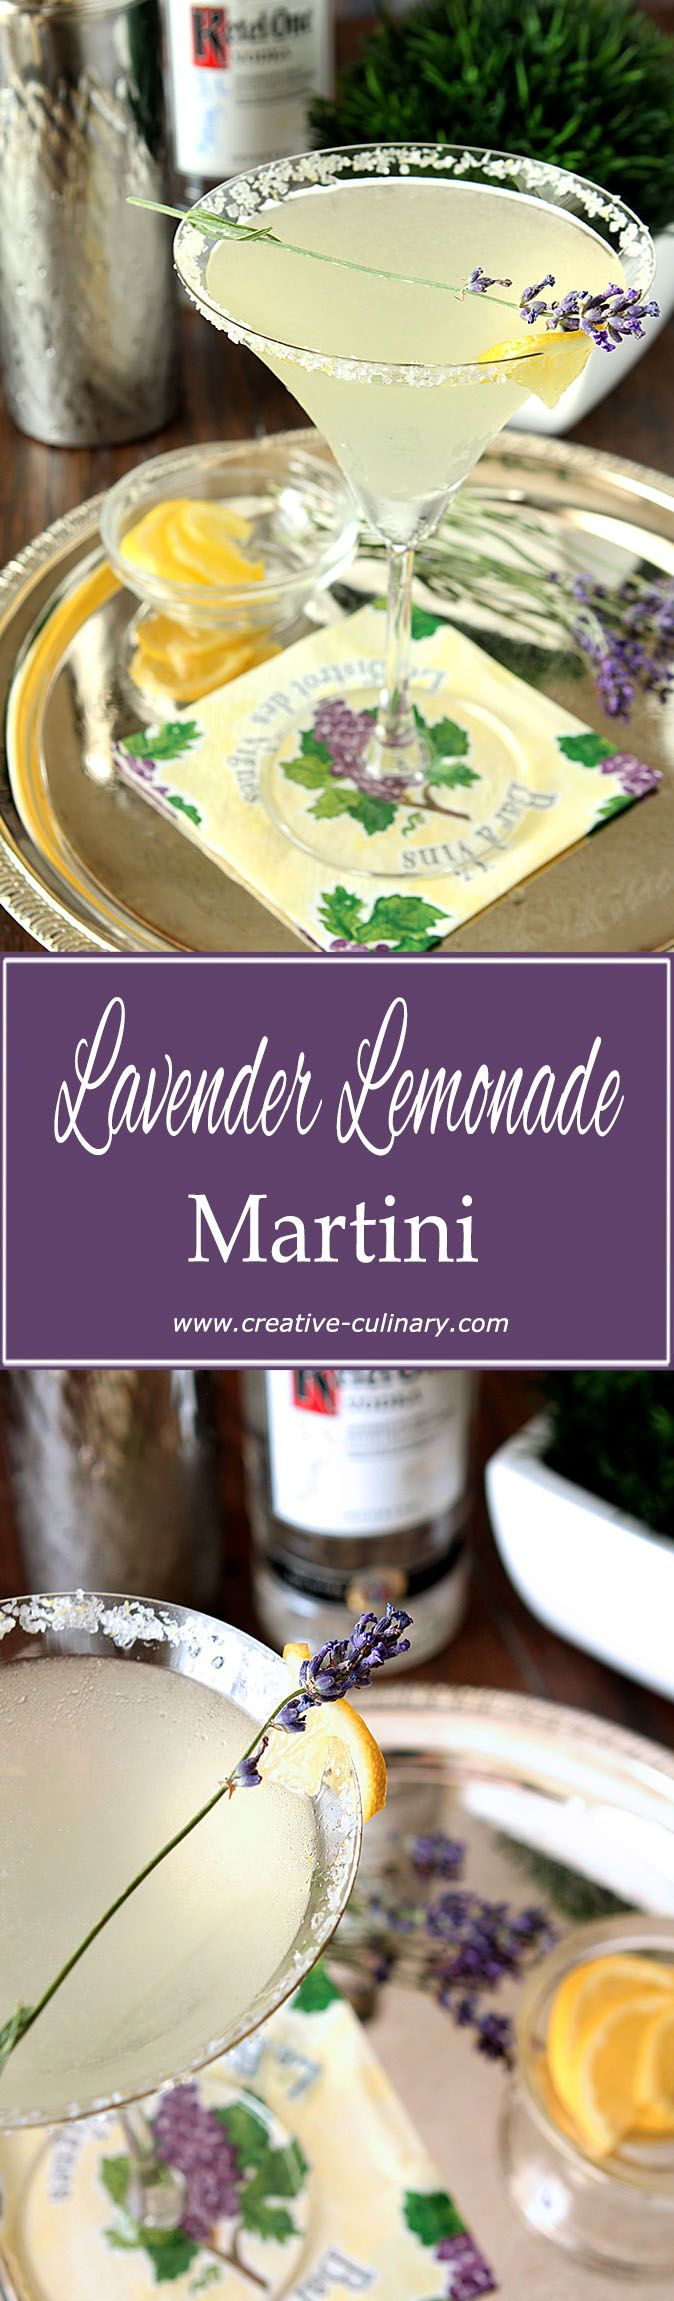 Light, Fresh and Lemony with just a hint of lavender, this Lavender Lemonade Martini is a fantastic summer libation. via @creativculinary